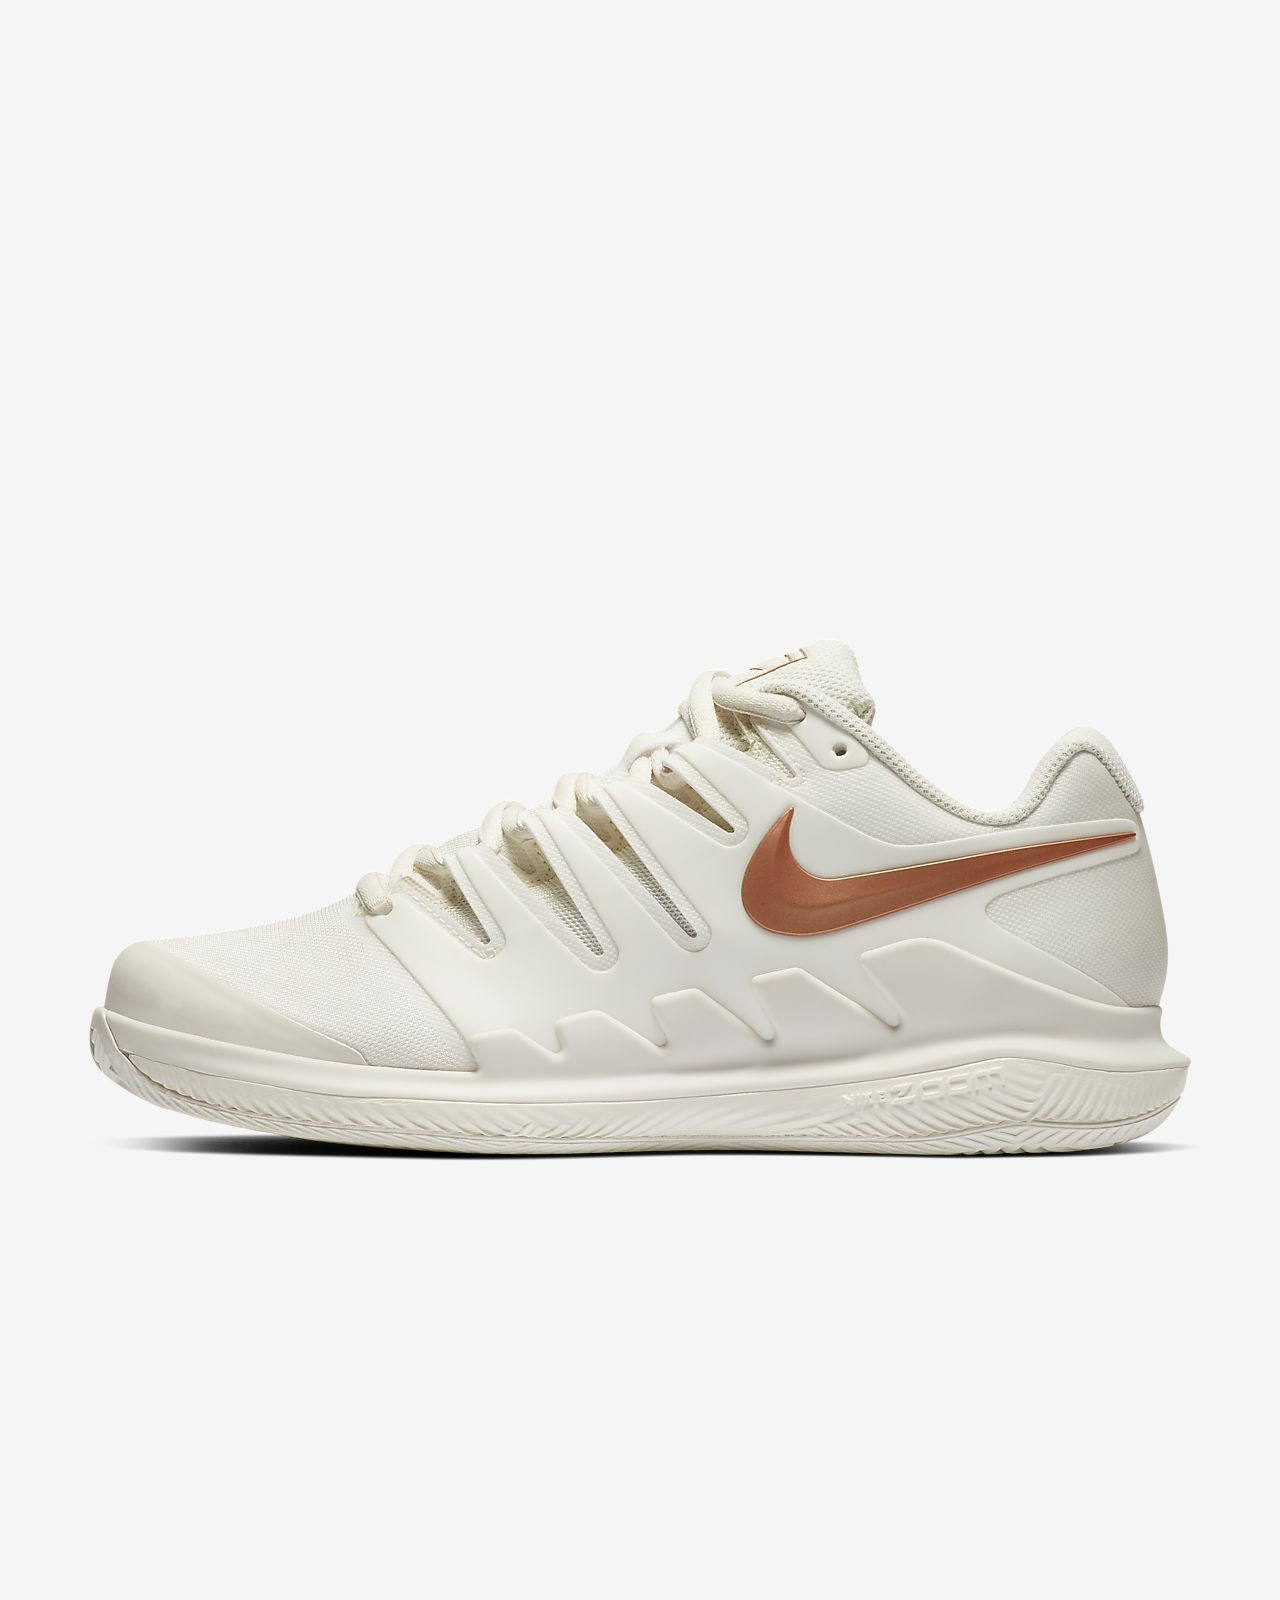 NikeCourt Air Zoom Vapor X Tennisschoen voor dames (gravel)